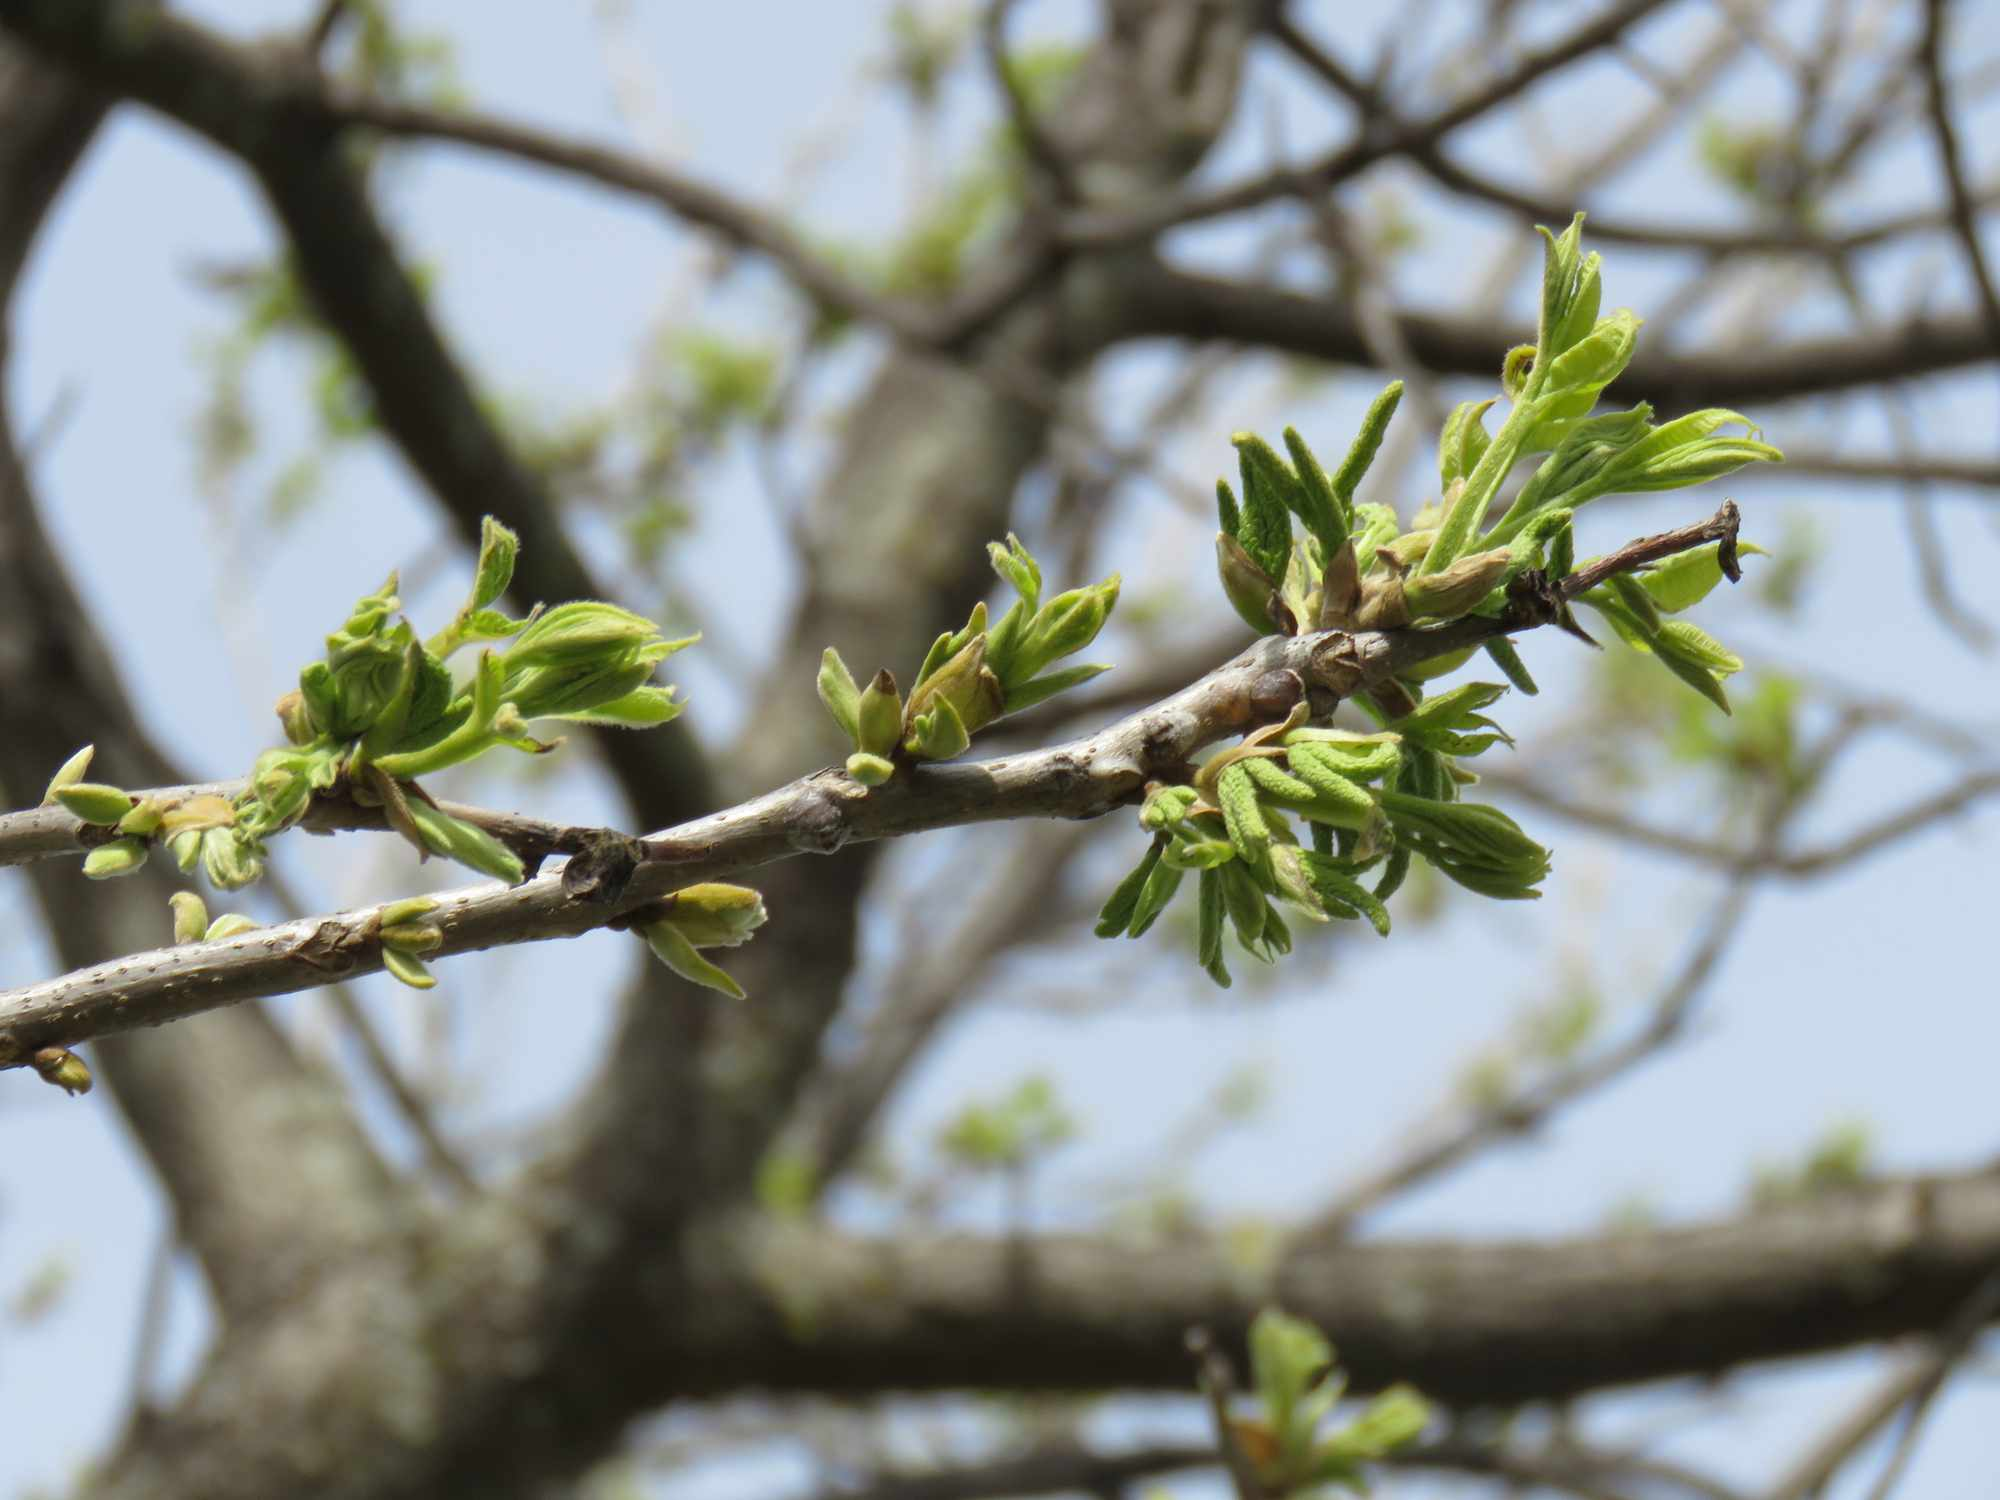 Pecan tree buds in the spring